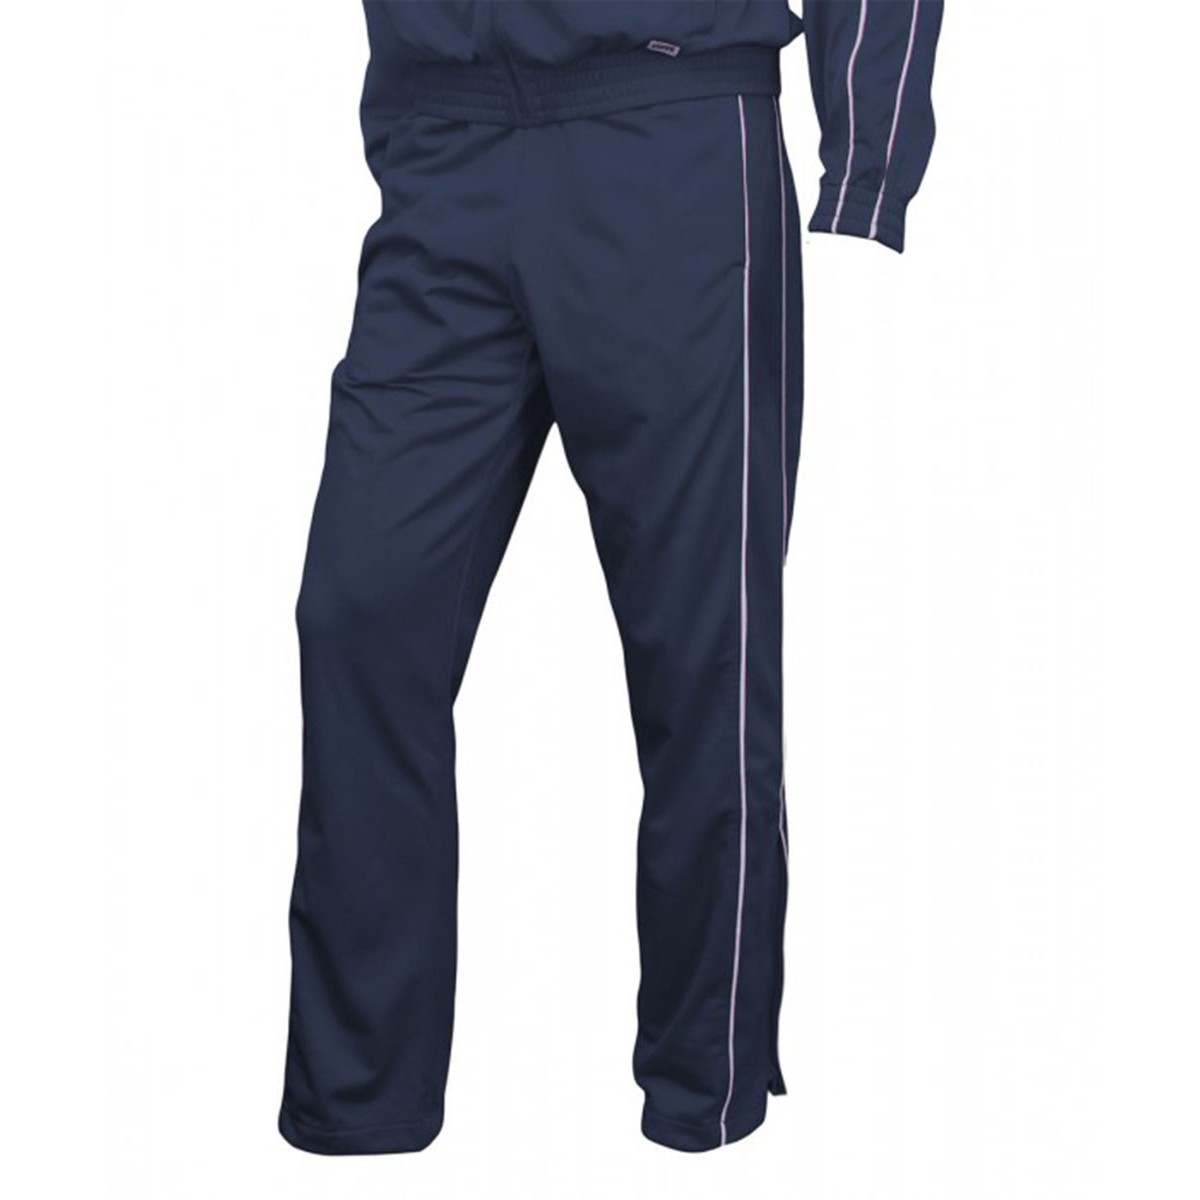 RES Gym Track Pants w/ Logo